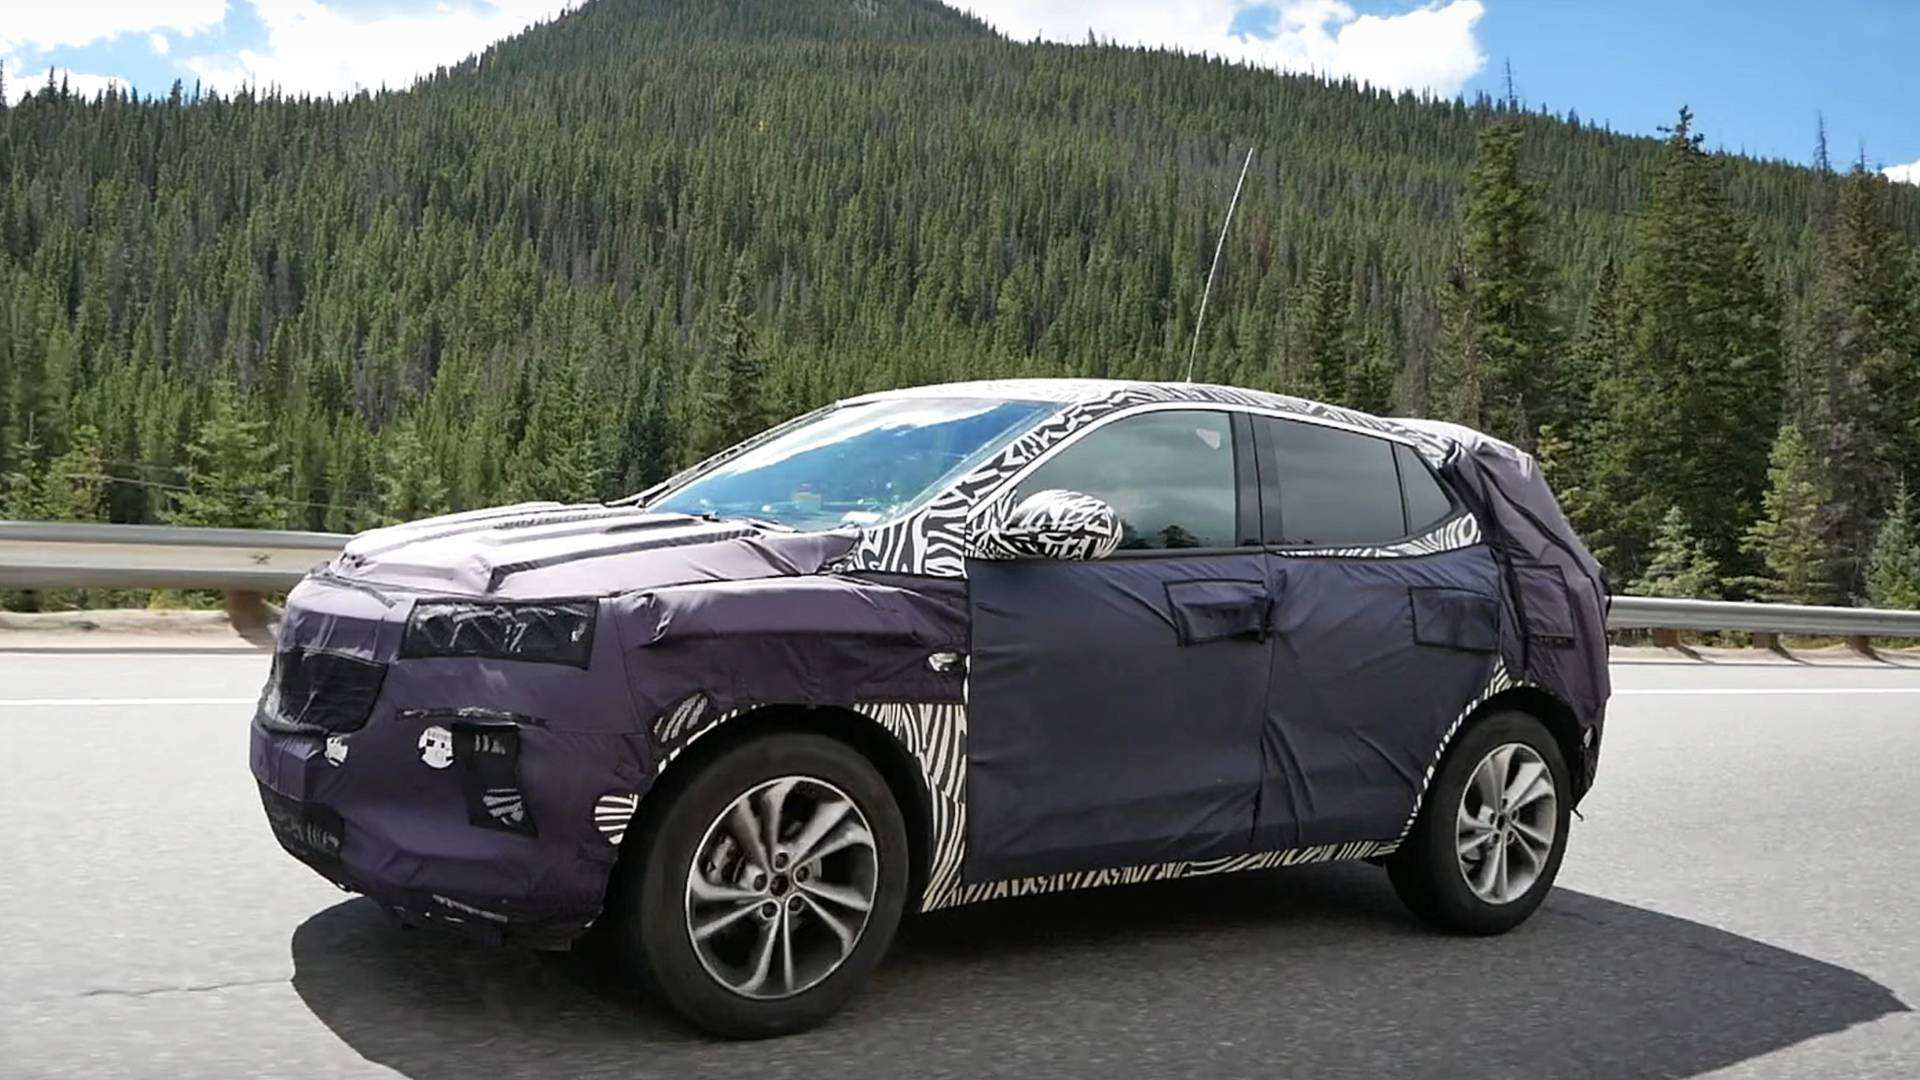 26 New Buick Lineup 2020 Images